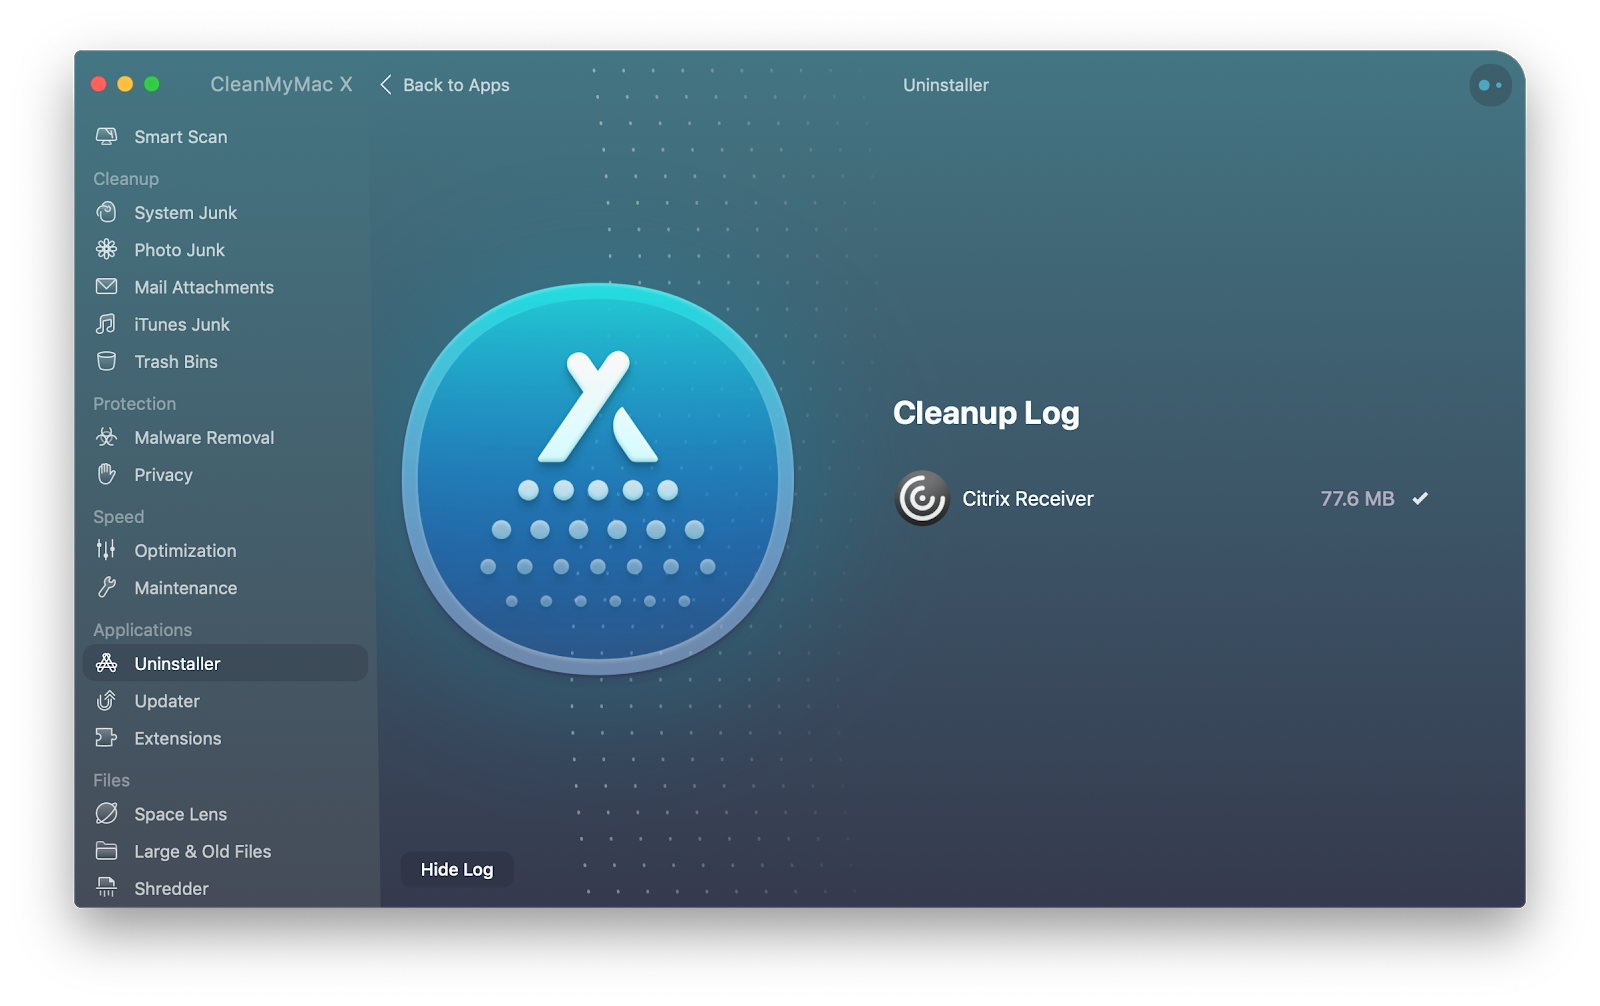 How to uninstall Citrix Receiver from your Mac